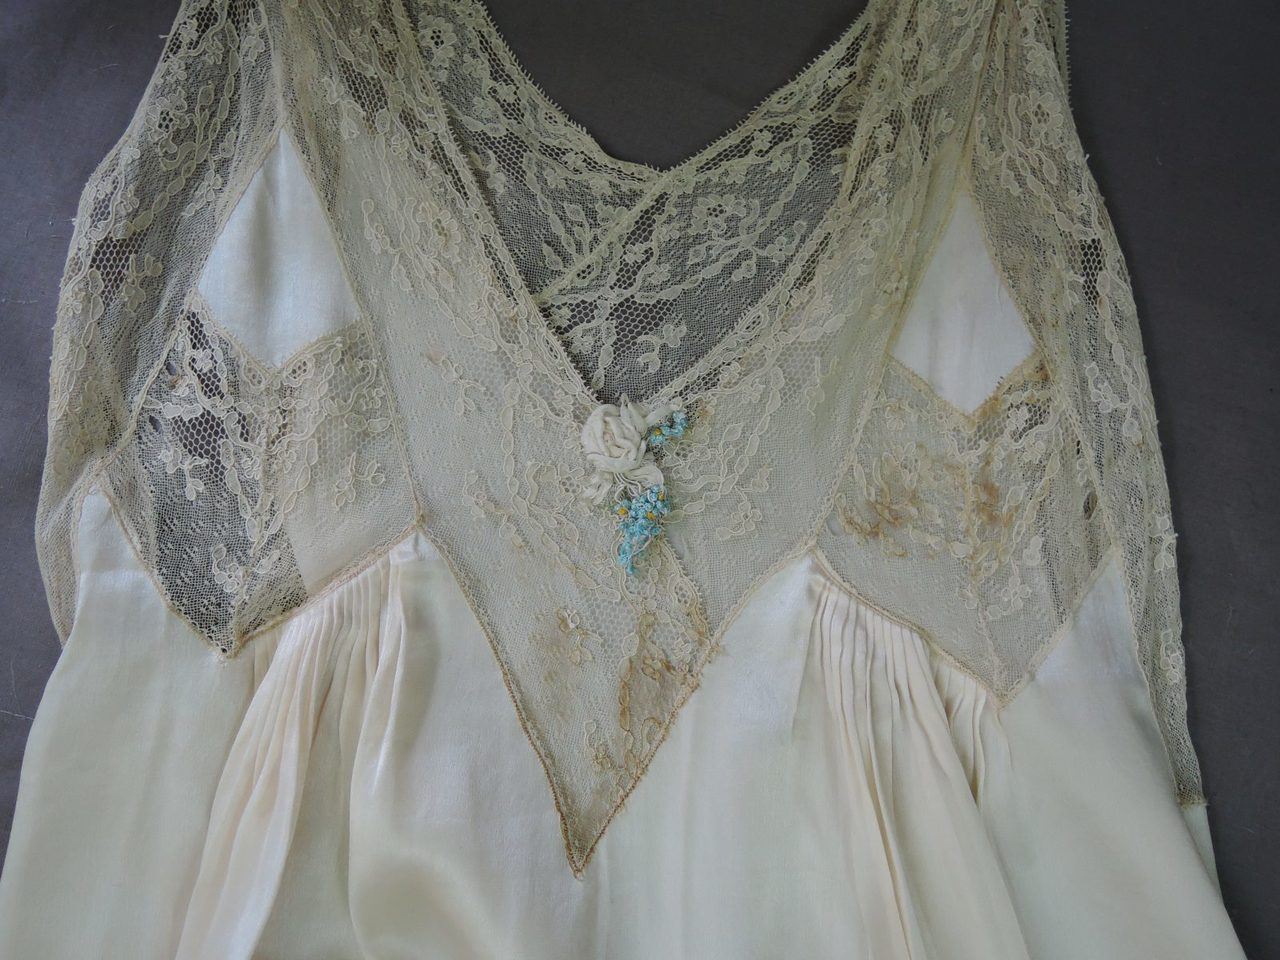 Vintage 1920s Ivory Silk & Lace Slip or Nightgown, fits 36 inch bust, Wedding Trousseau, with issues